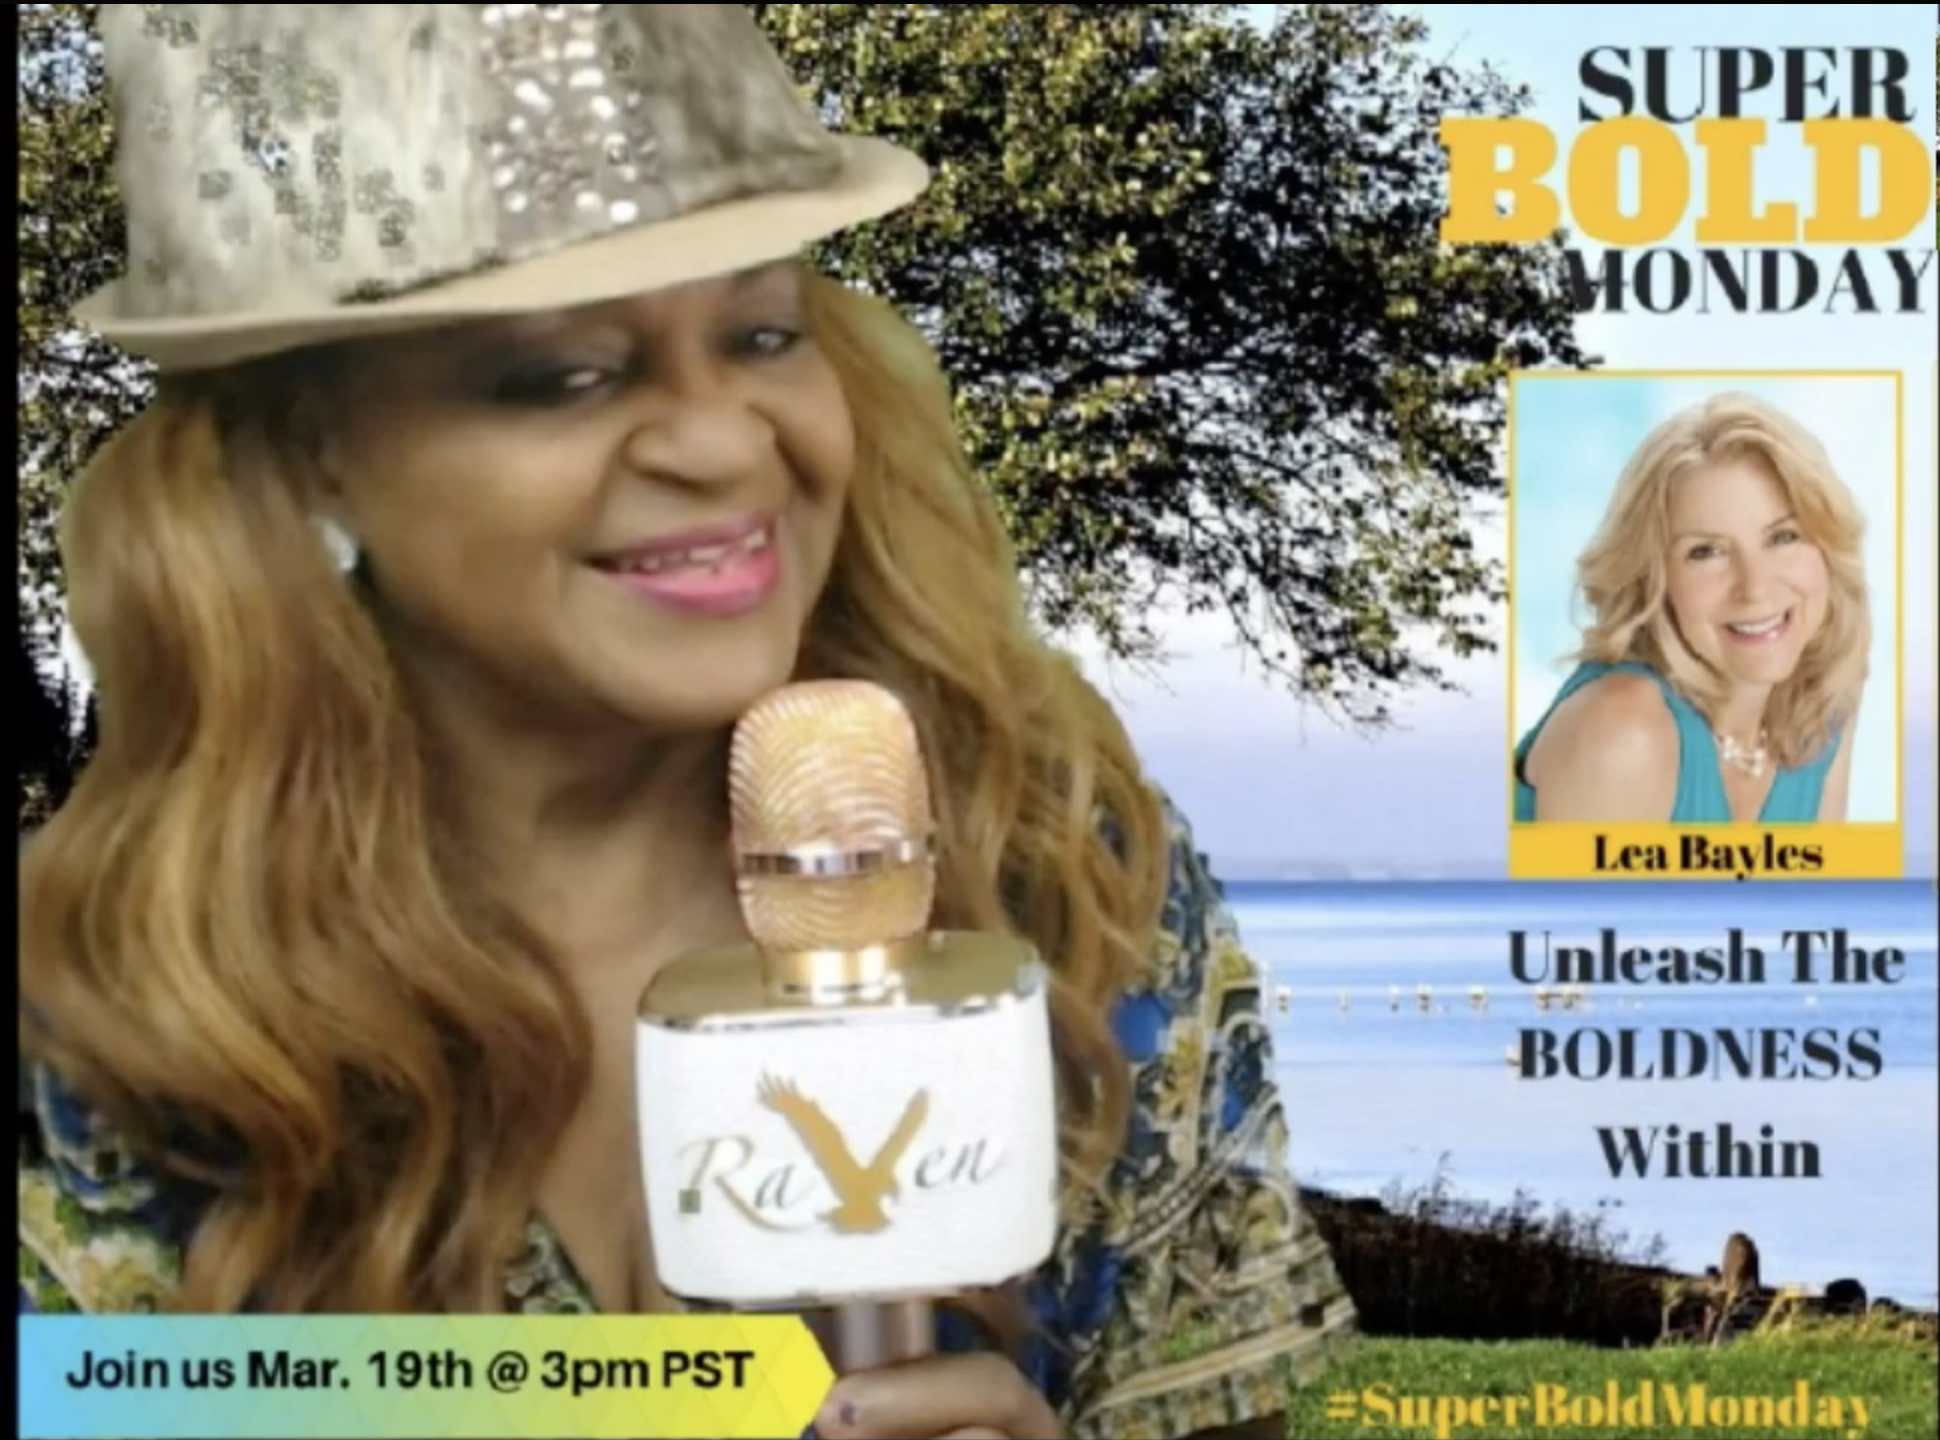 Talk Show Maven Live TV: Super Bold Monday Season 1 Episode 6 with Lea Bayles